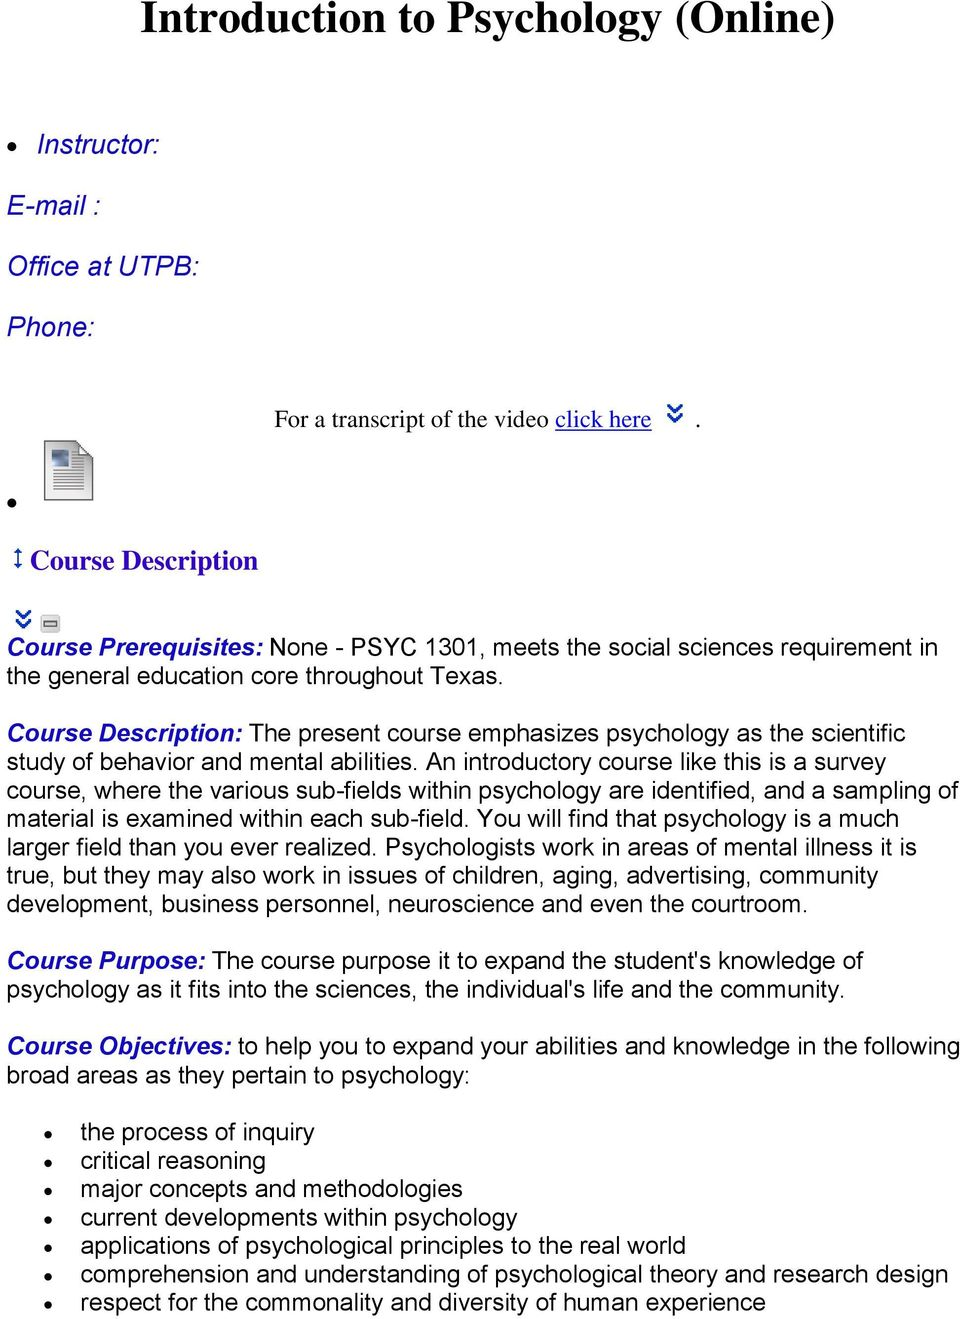 Course Description: The present course emphasizes psychology as the scientific study of behavior and mental abilities.